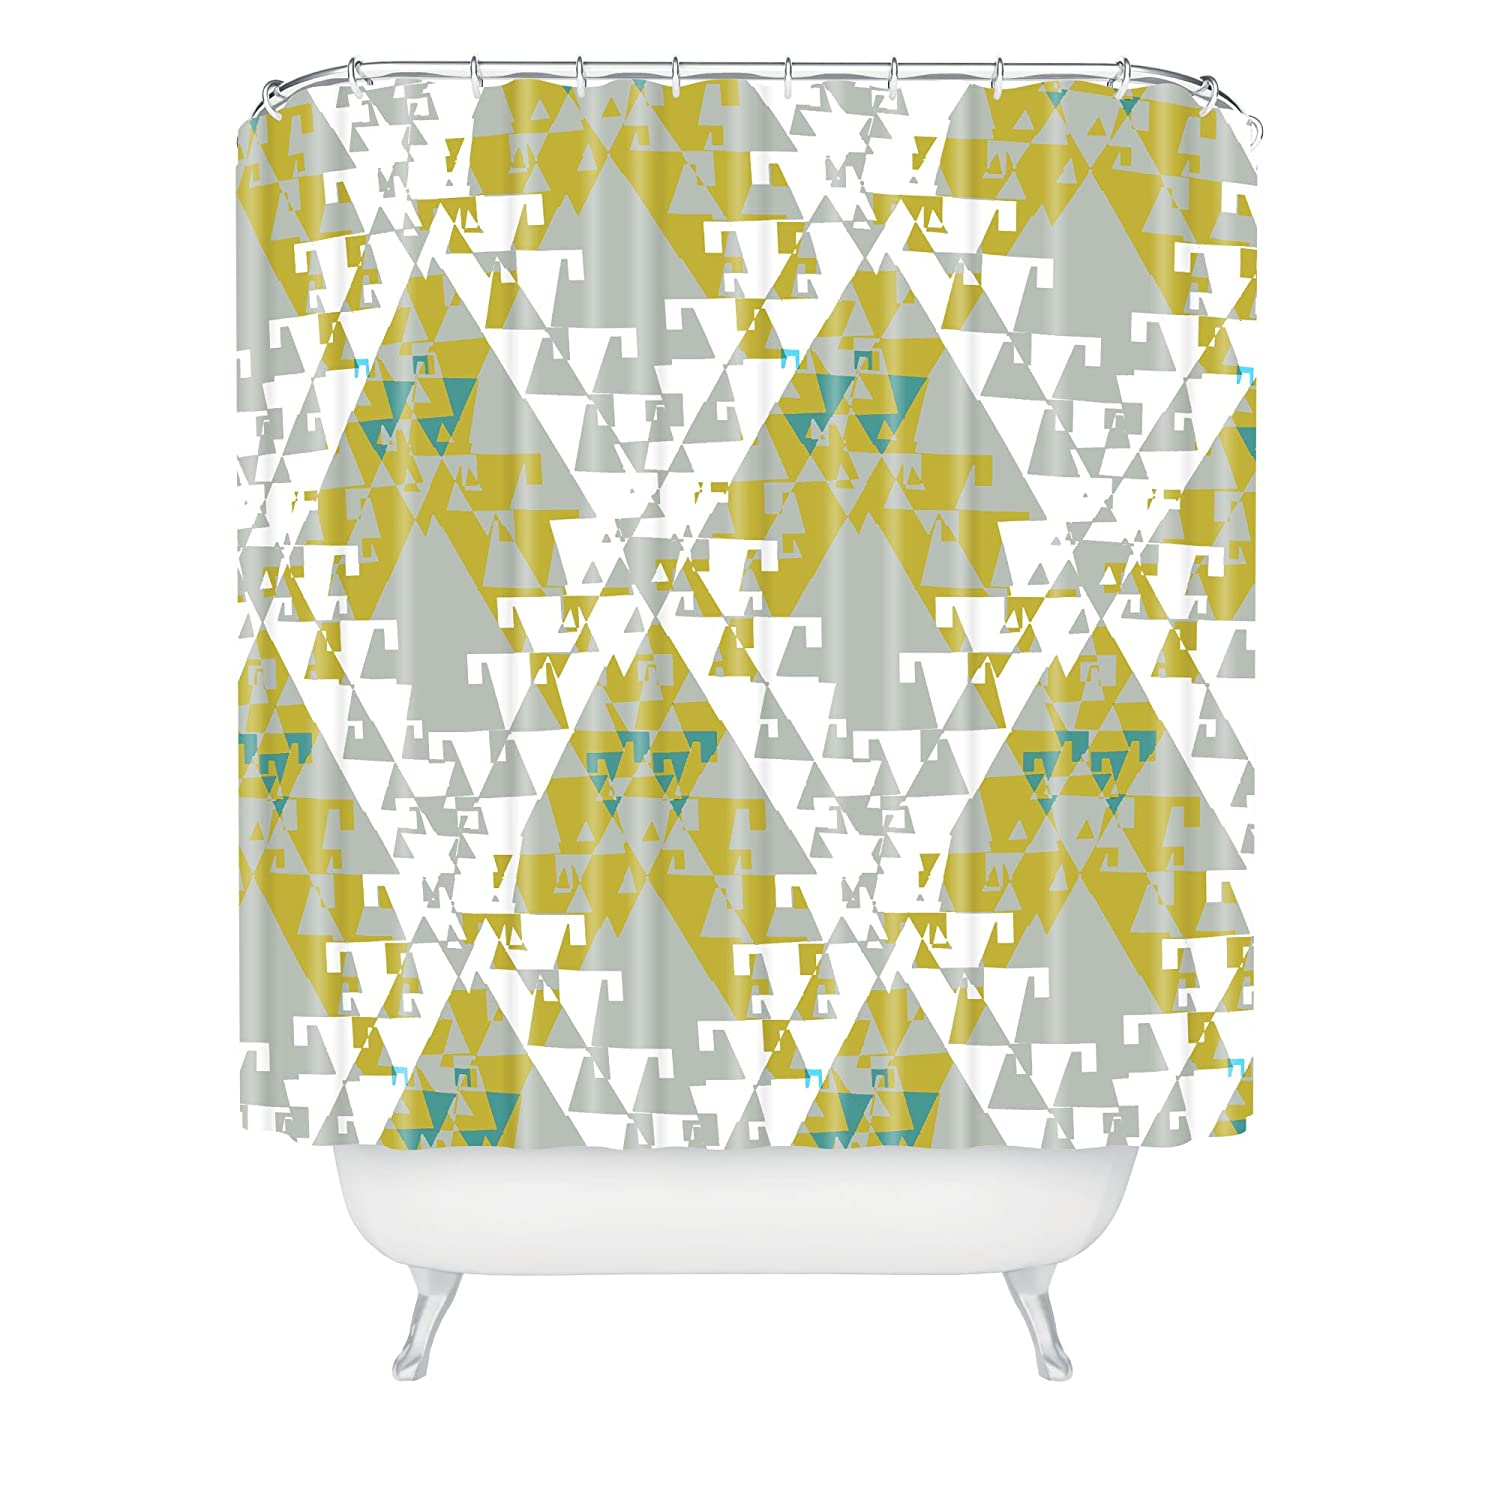 Deny Designs 71 by 74-Inch Bel Lefosse Design Geoethnic Shower Curtain Standard